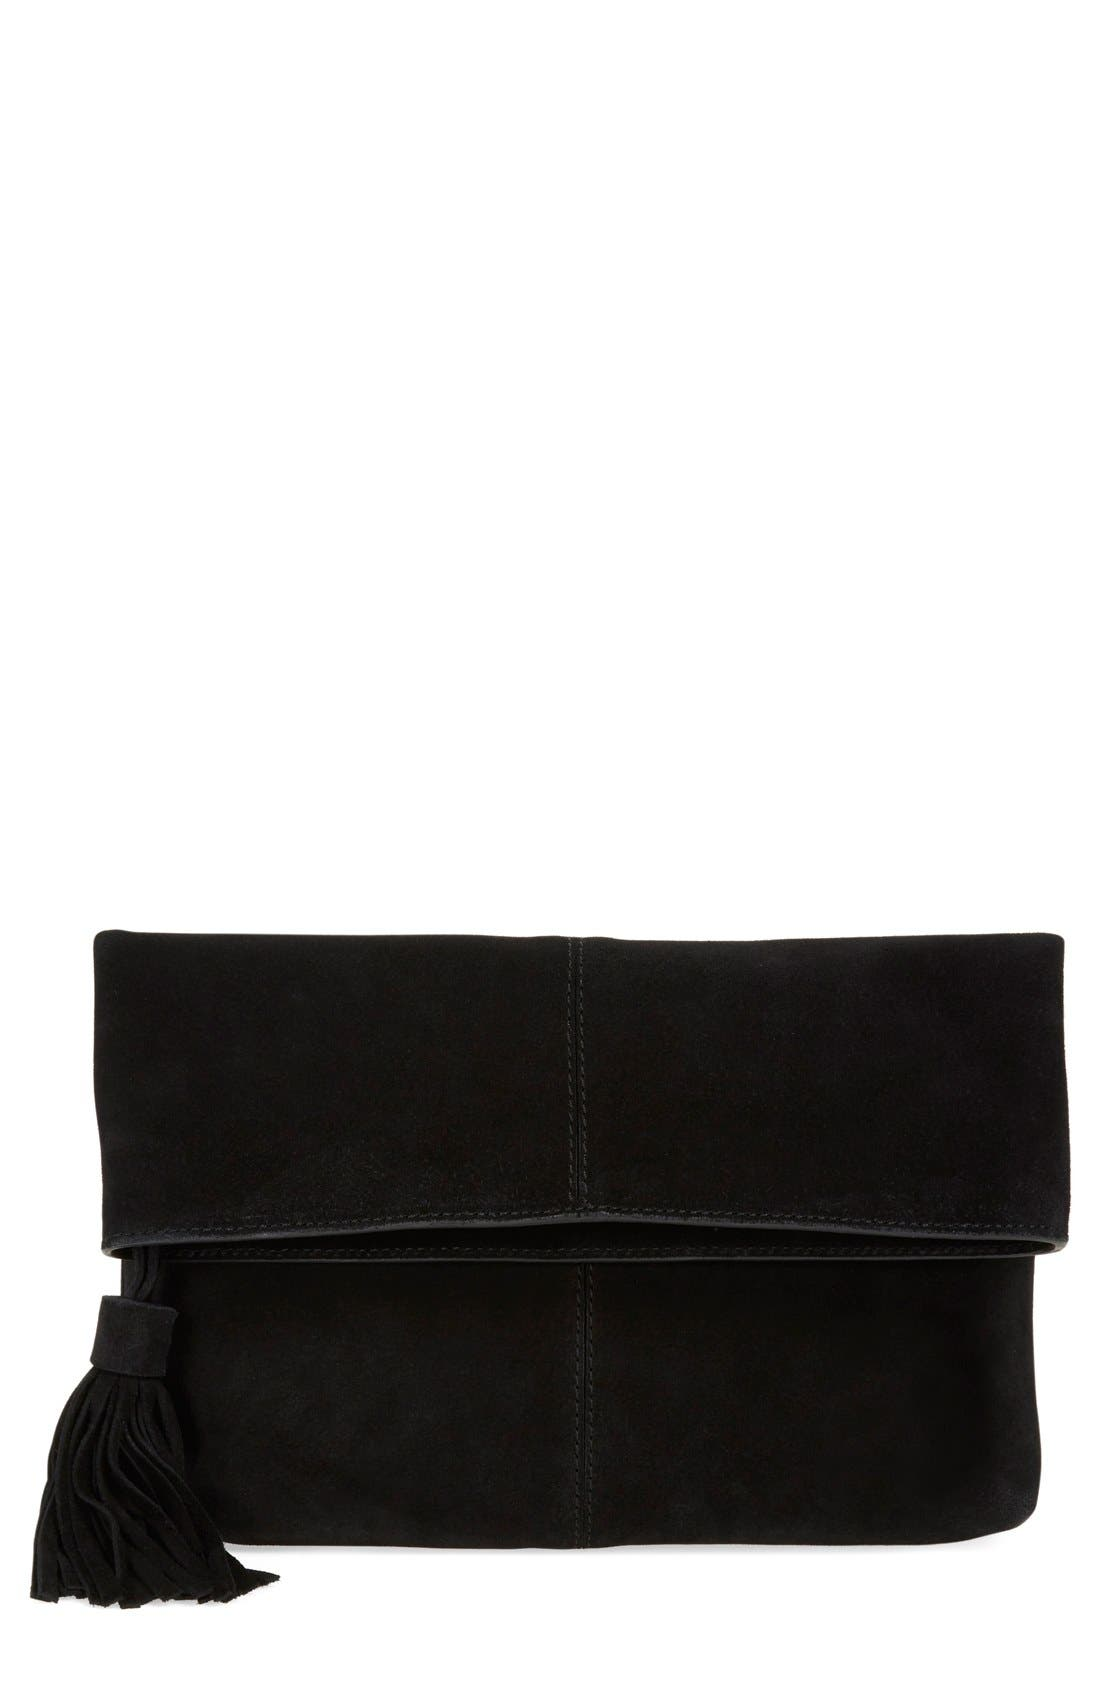 Main Image - Leith Suede Clutch